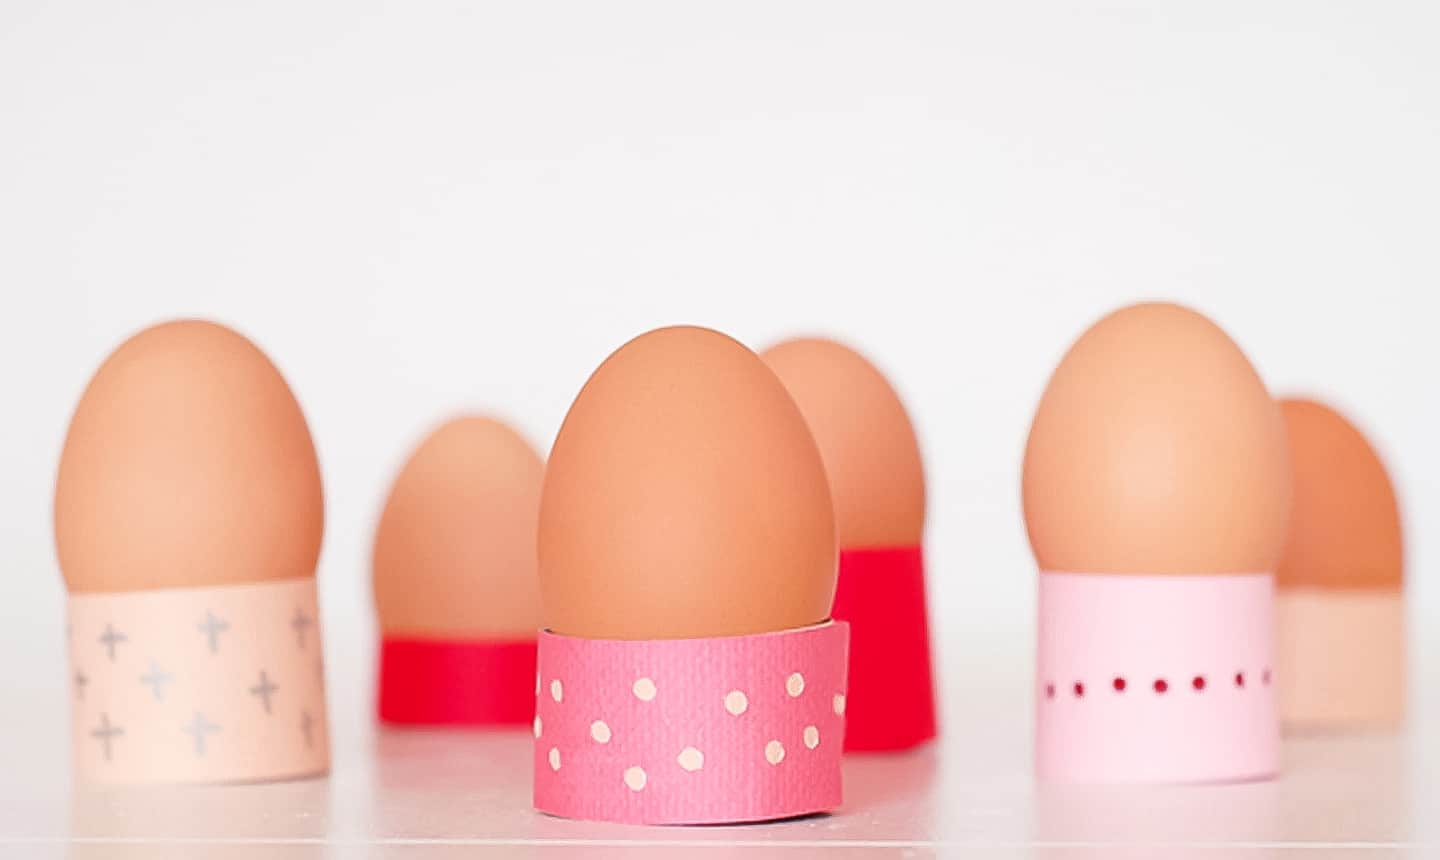 eggs in paper egg holders